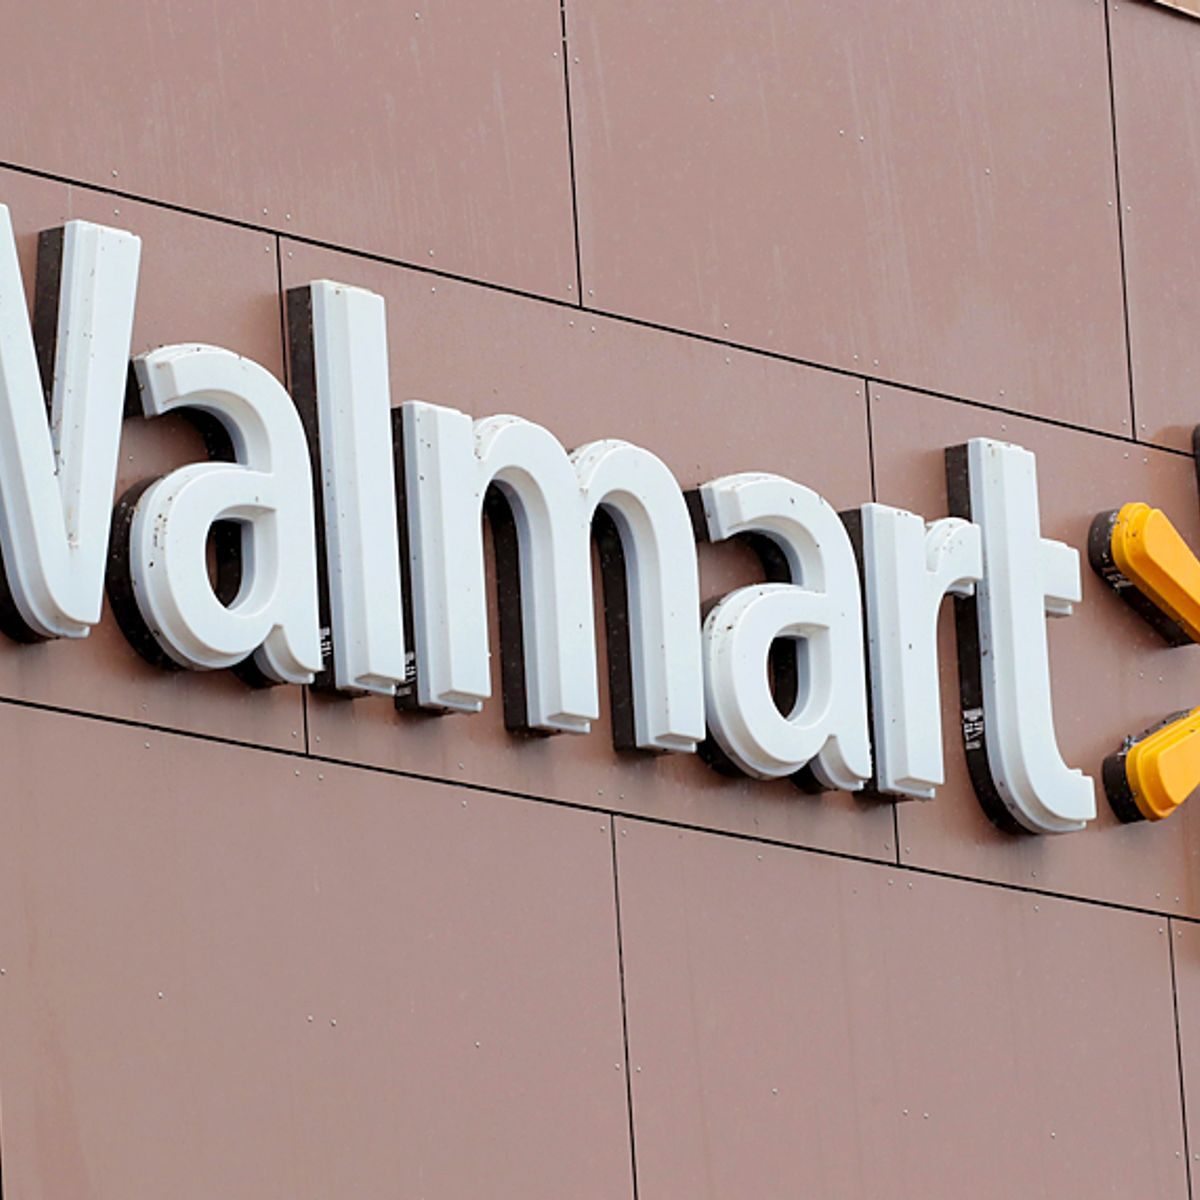 Walmart to give workers financial incentives to use higher-quality doctors